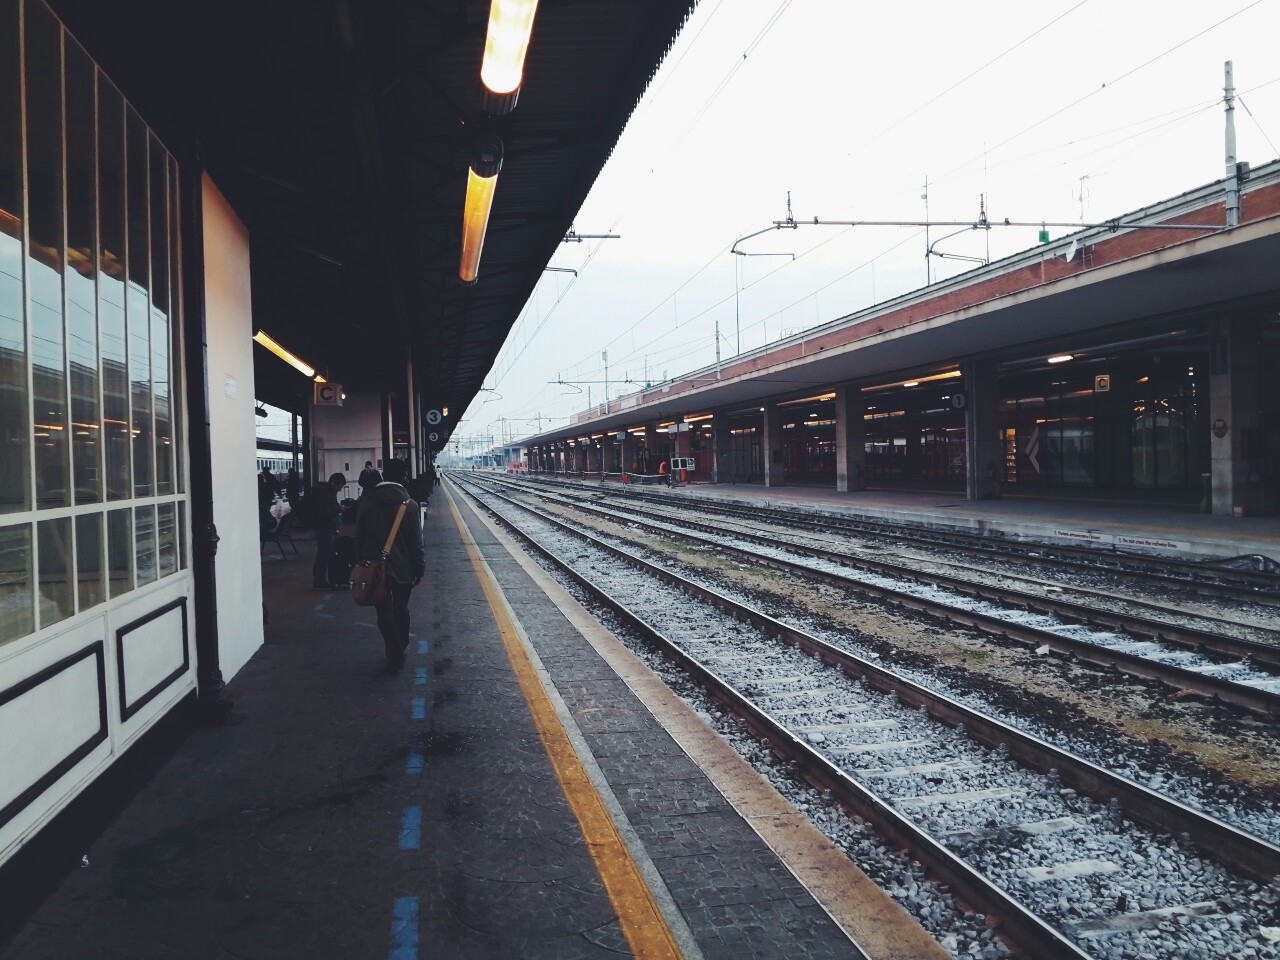 alone, beautiful, classic, dark, everything, grunge, indie, italy, lovely, mine, pale, perfect, photography, road trip, sad, train station, university, verona, winter, new friends, bad thoughts